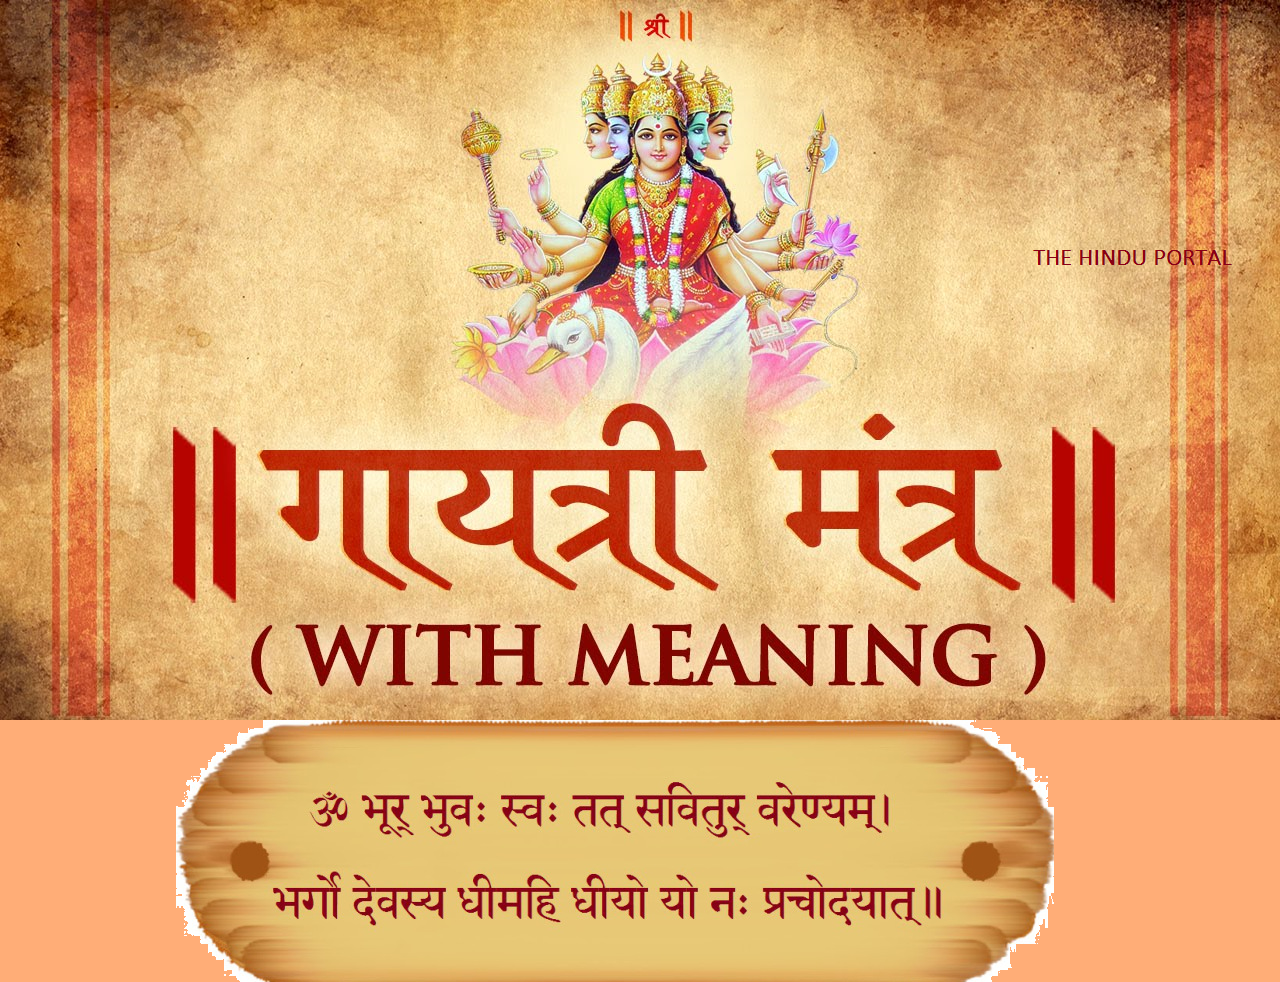 Gayatri Mantras of various Hindu deities for success and wealth